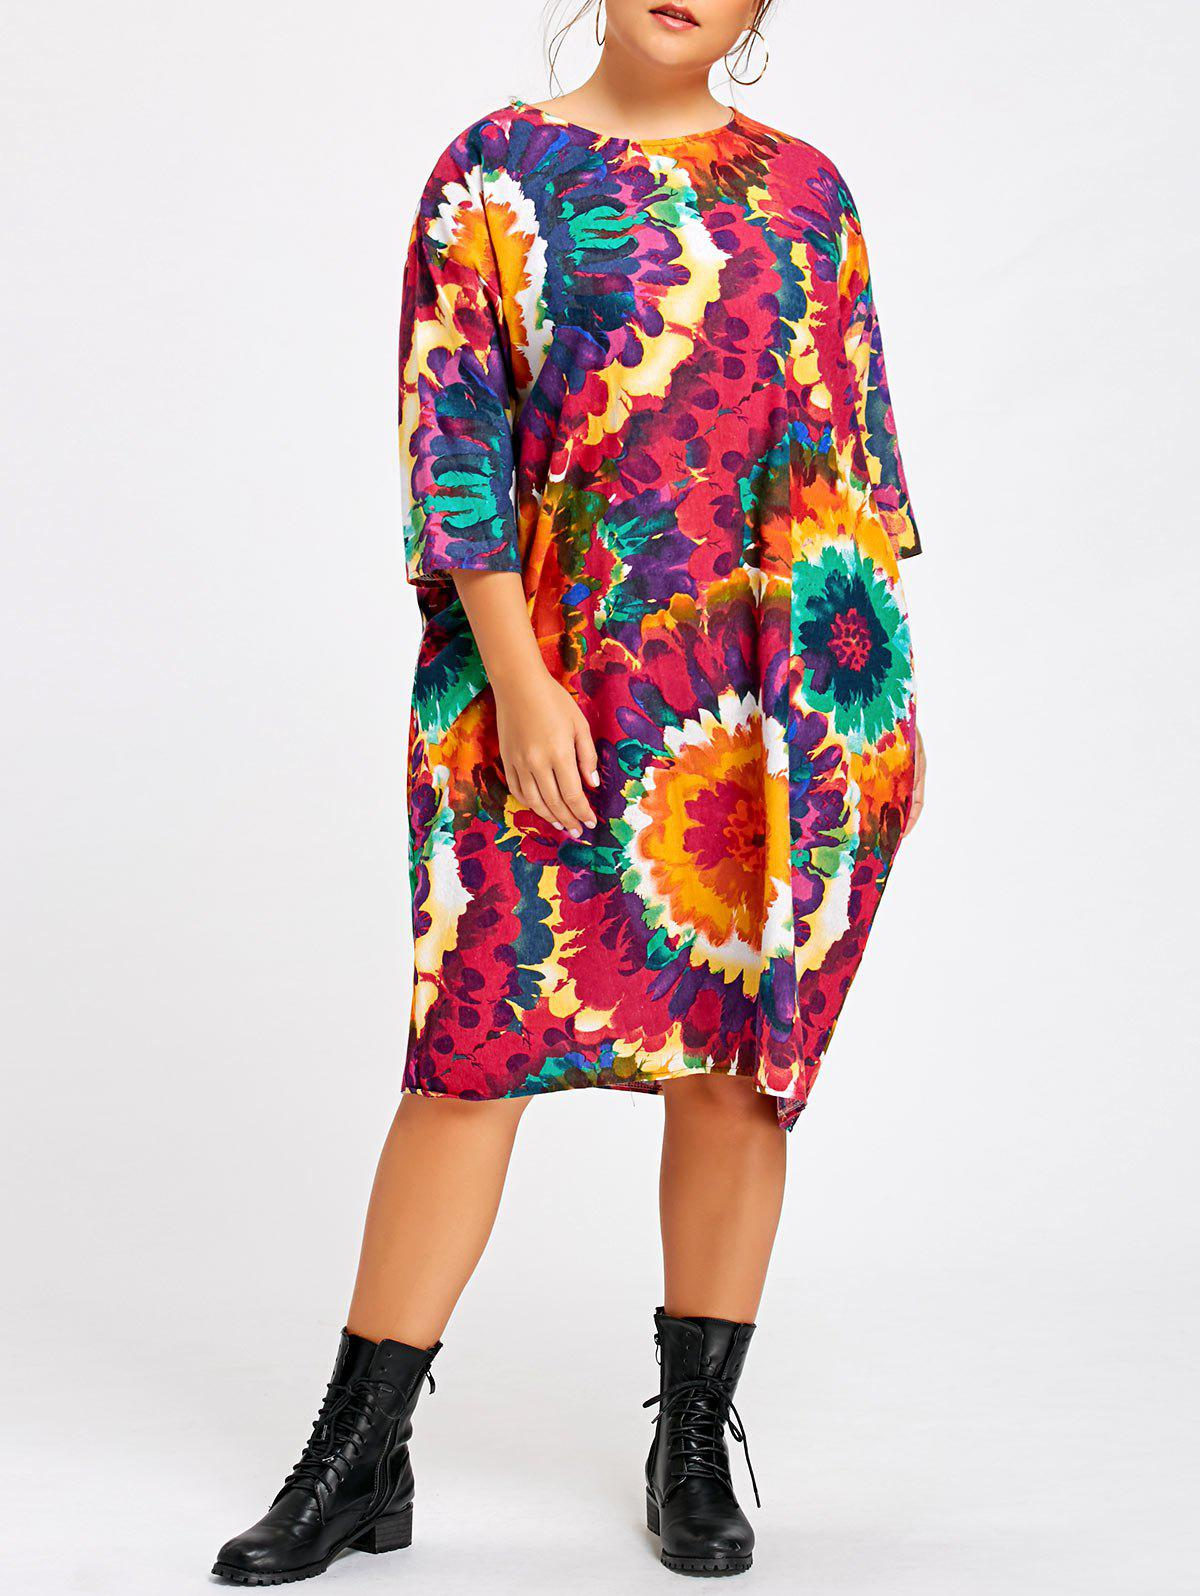 Plus Size Tie Dye Rainbow Tunic Dress with SleevesWOMEN<br><br>Size: ONE SIZE; Color: MULTICOLOR; Style: Casual; Material: Cotton Blend,Polyester; Silhouette: Straight; Dresses Length: Mid-Calf; Neckline: Round Collar; Sleeve Length: 3/4 Length Sleeves; Embellishment: Pockets; Pattern Type: Print; With Belt: No; Season: Fall,Winter; Weight: 0.3600kg; Package Contents: 1 x Dress;